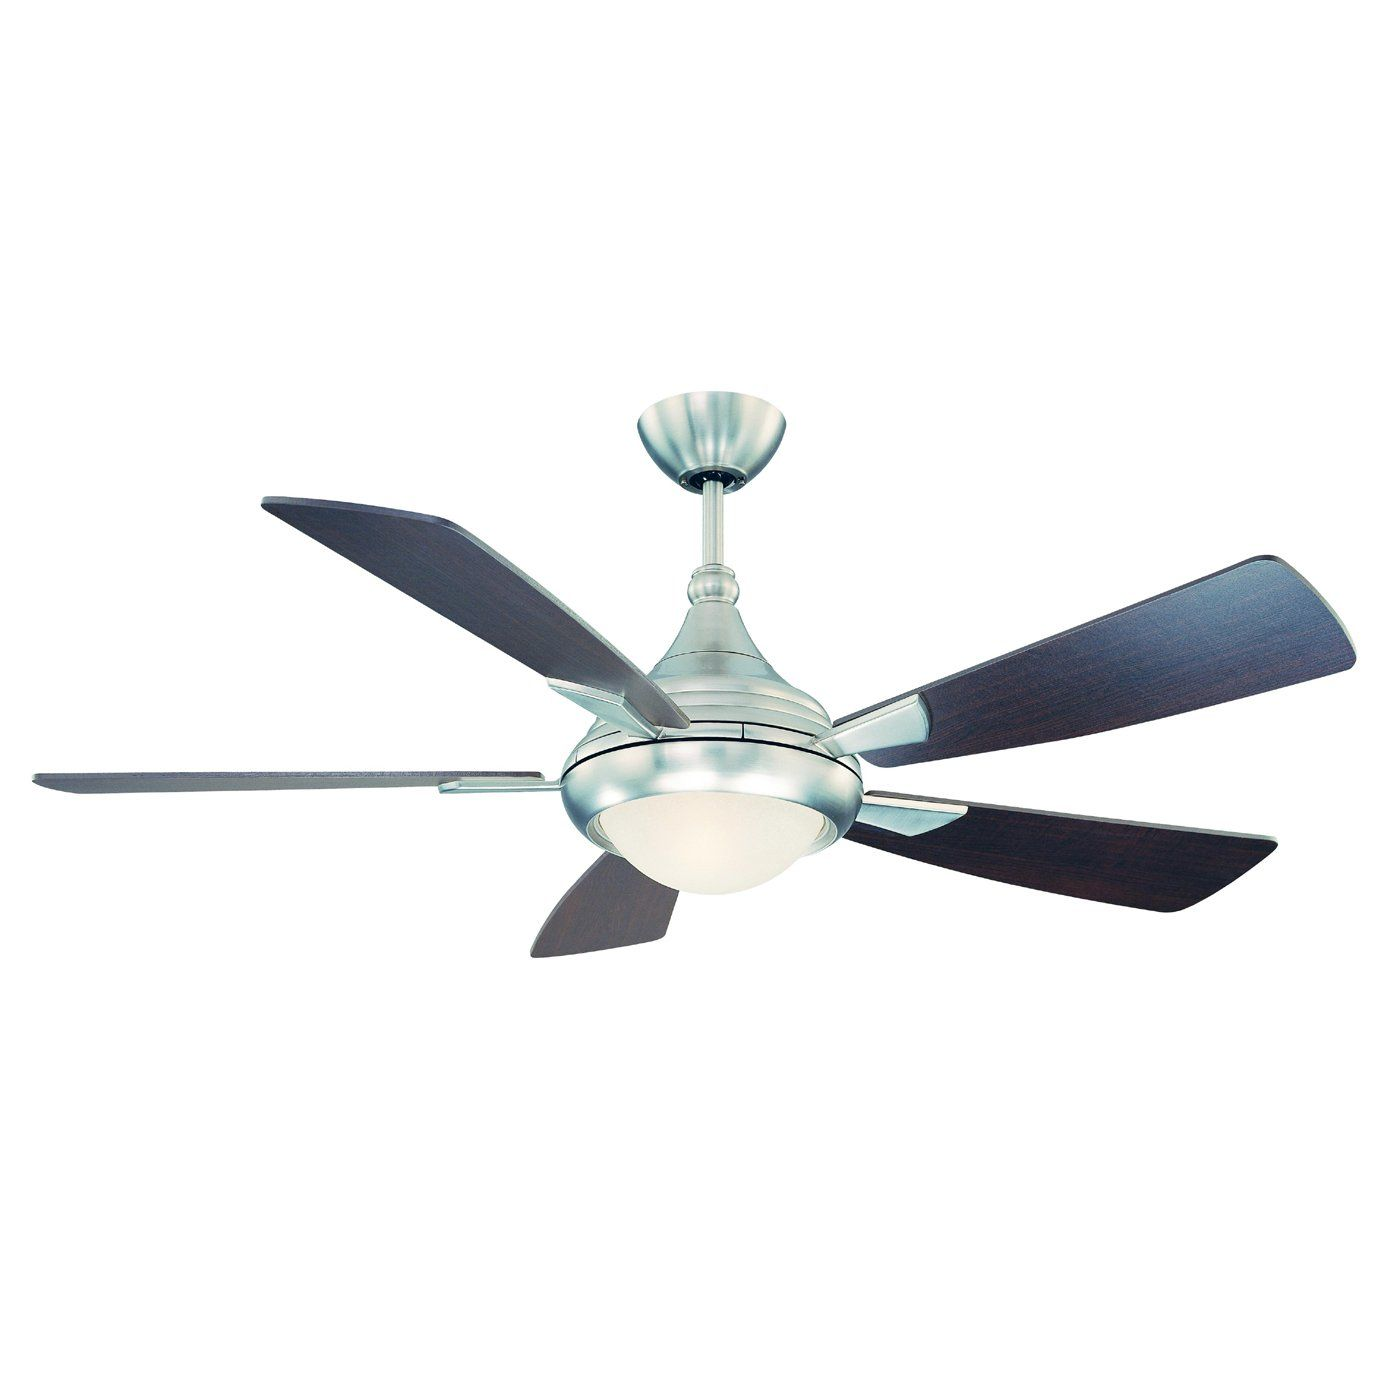 Savoy House 54 471 5 Zephyr Ceiling Fan at ATG Stores